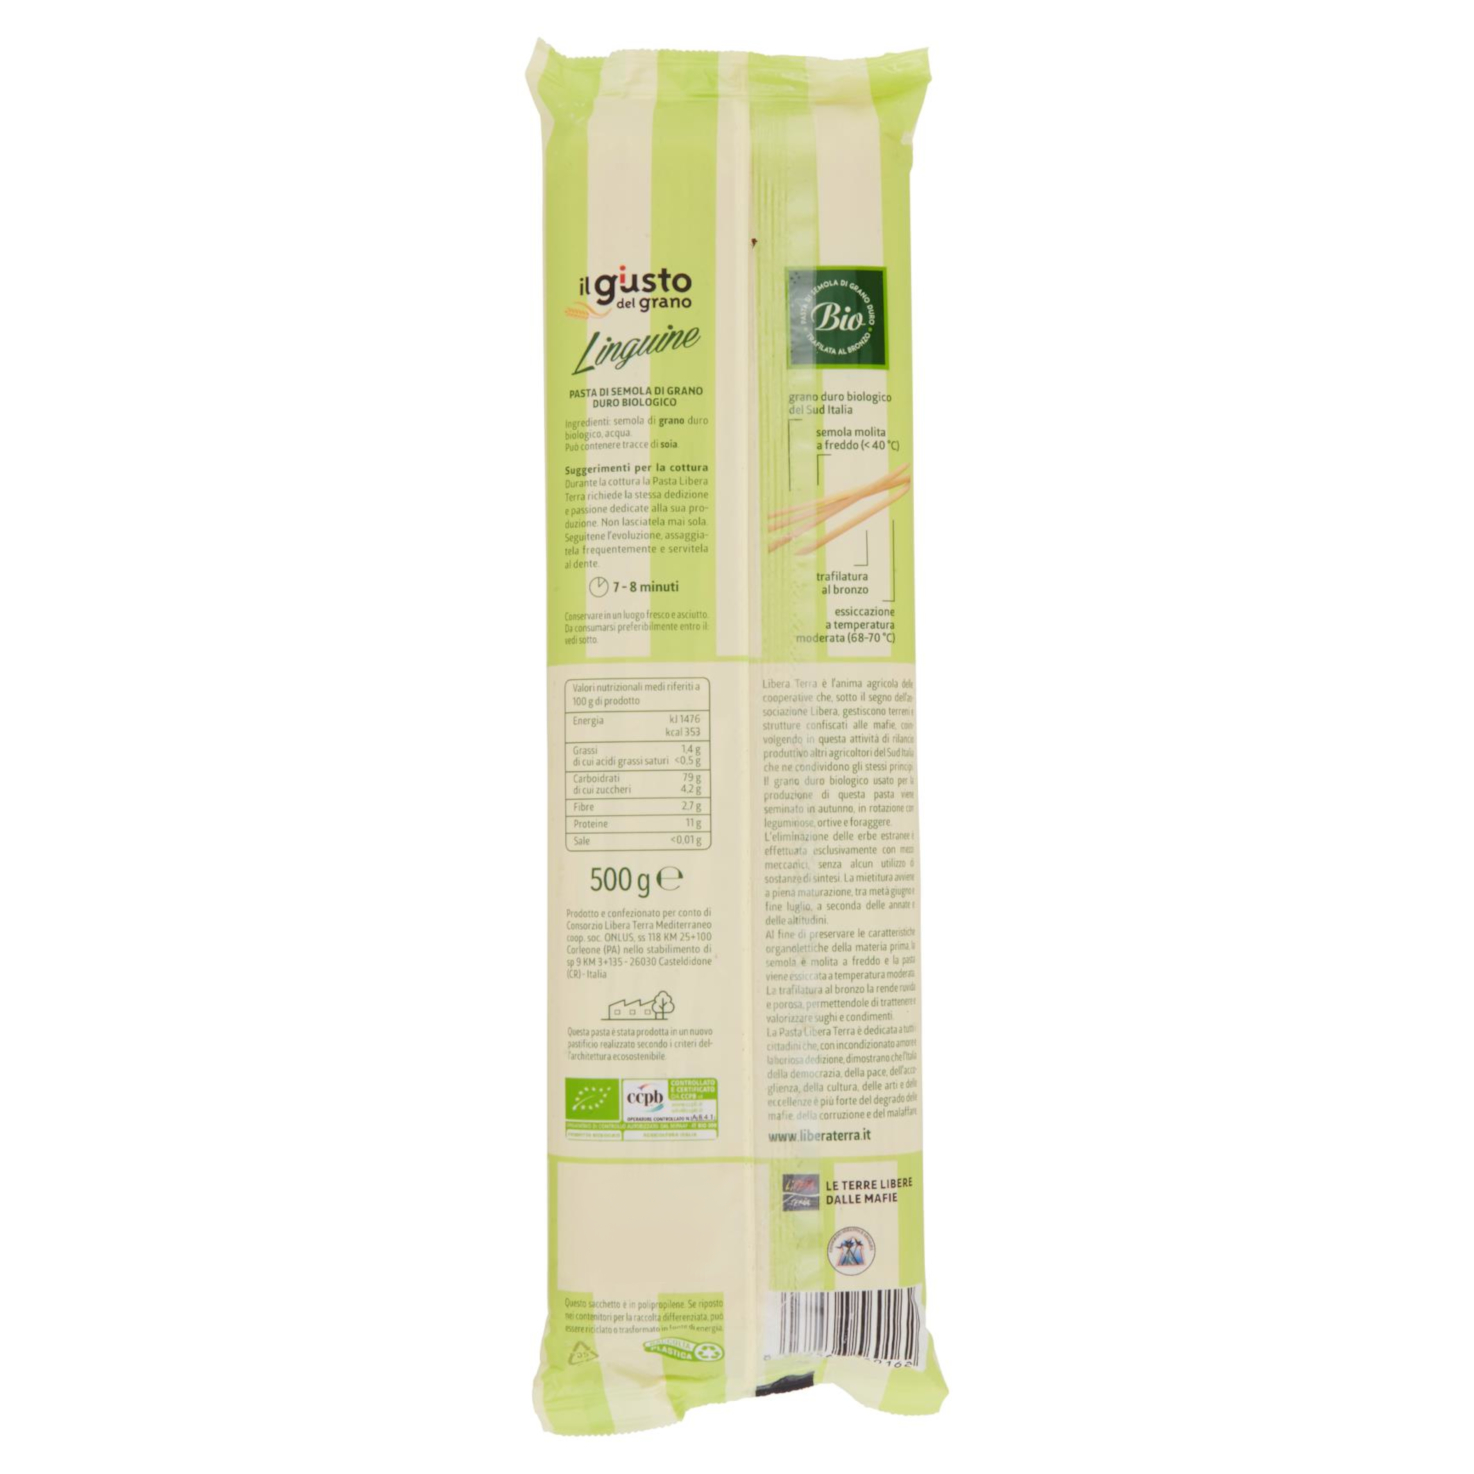 Linguine Biologiche 500g